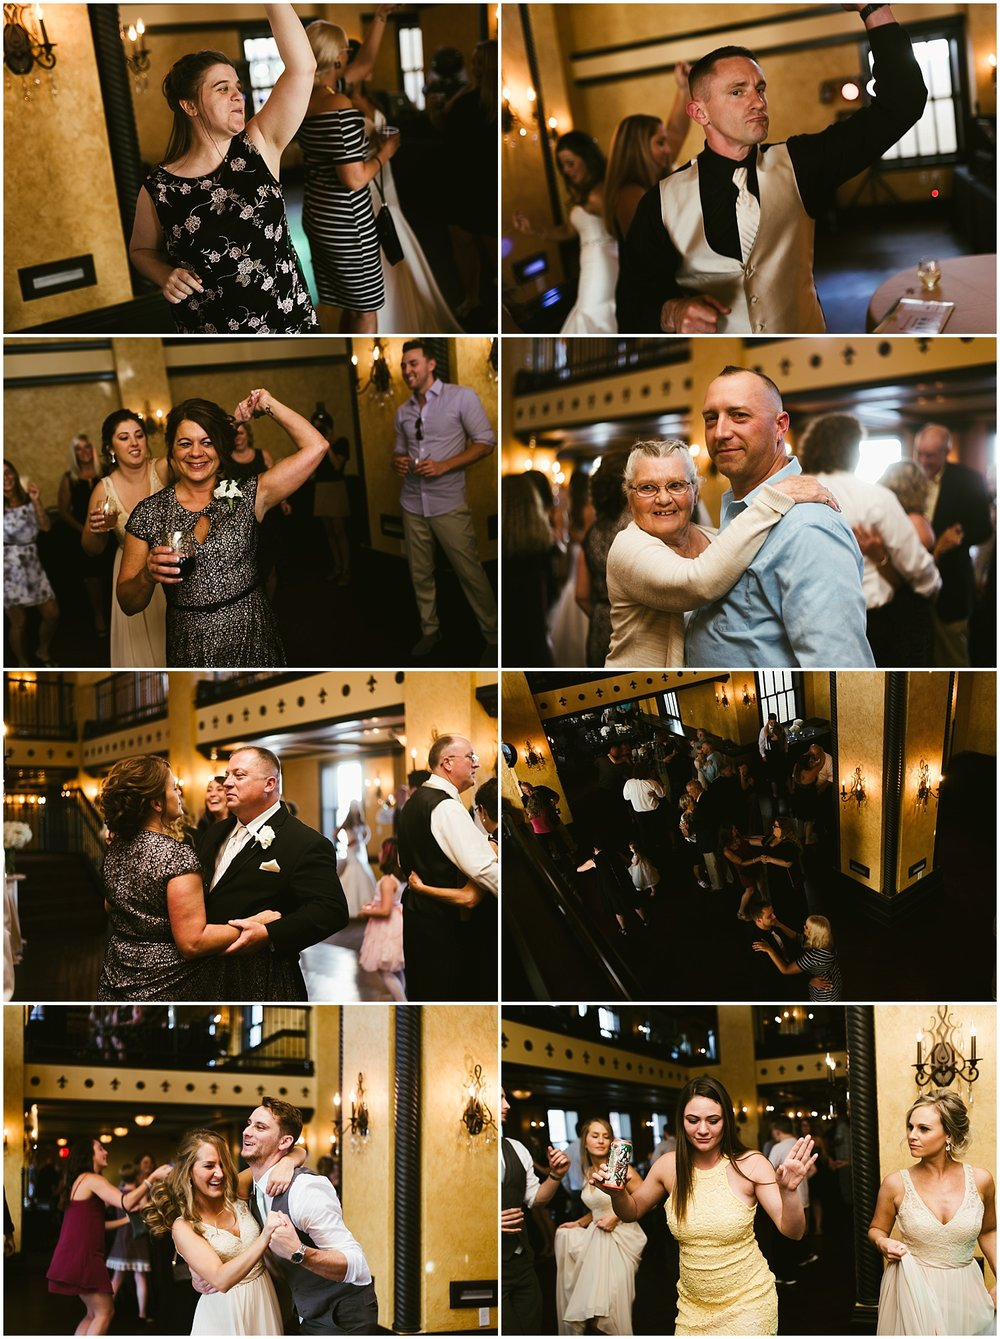 party-pictures-guests-celebrating-embassy-theatre-wedding-grand-ballroom